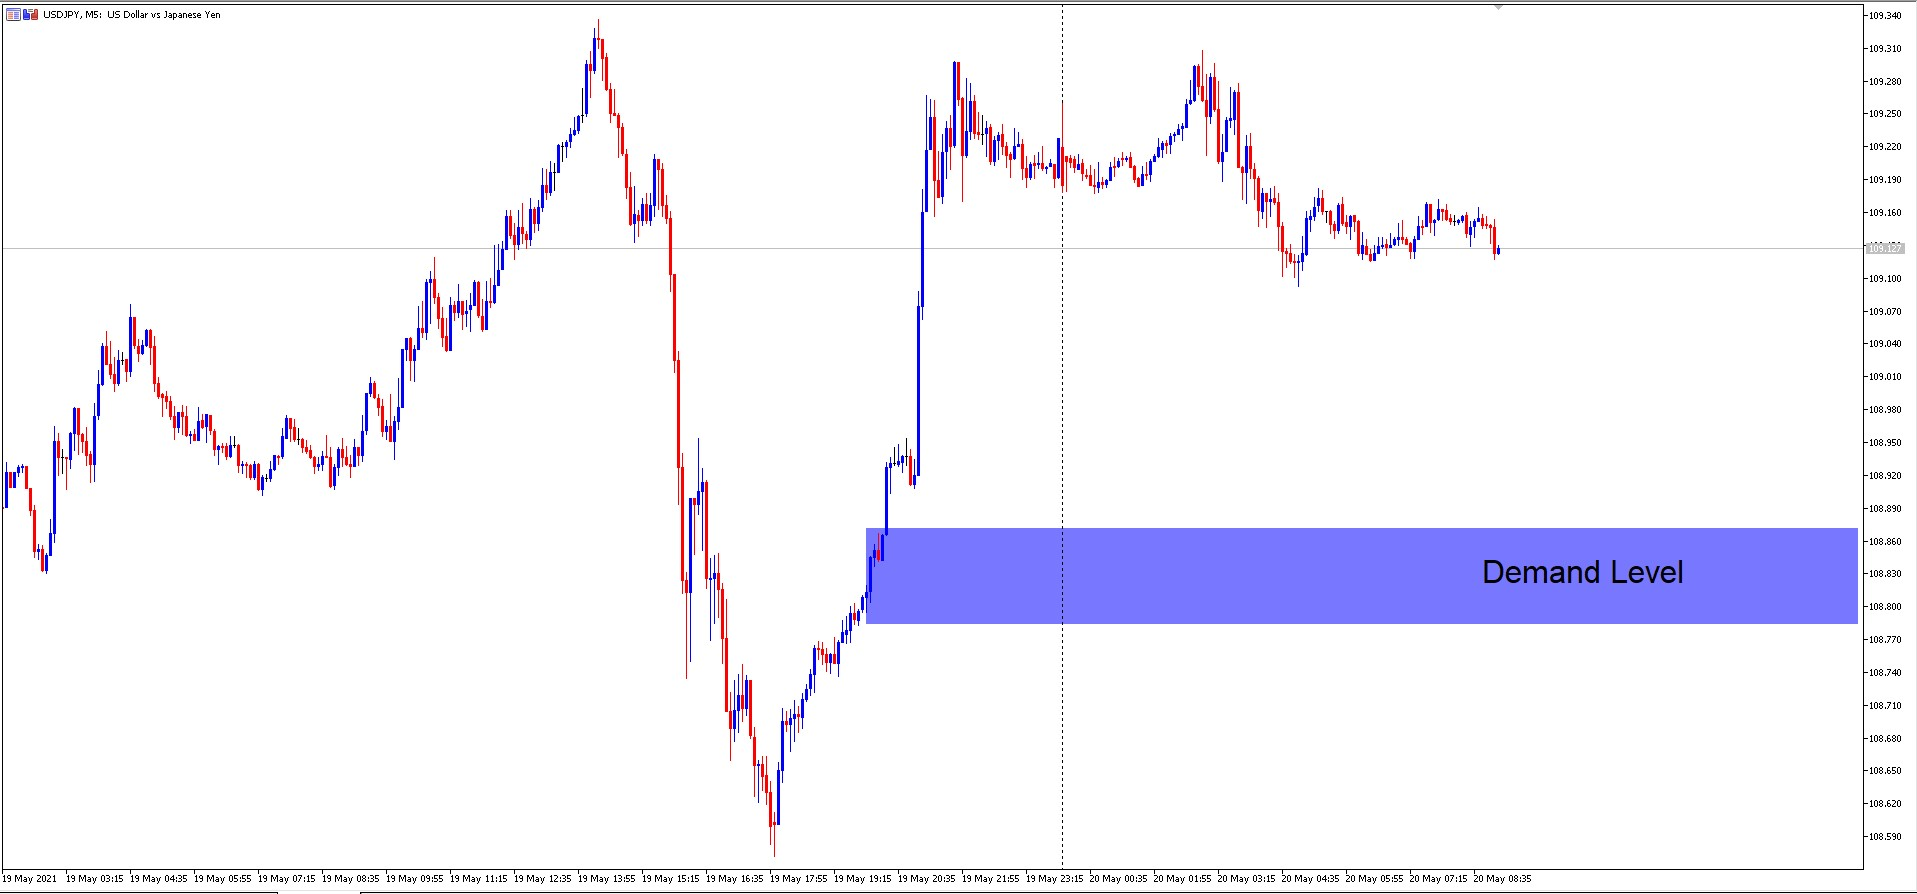 USD/JPY M5 Supply and Demand